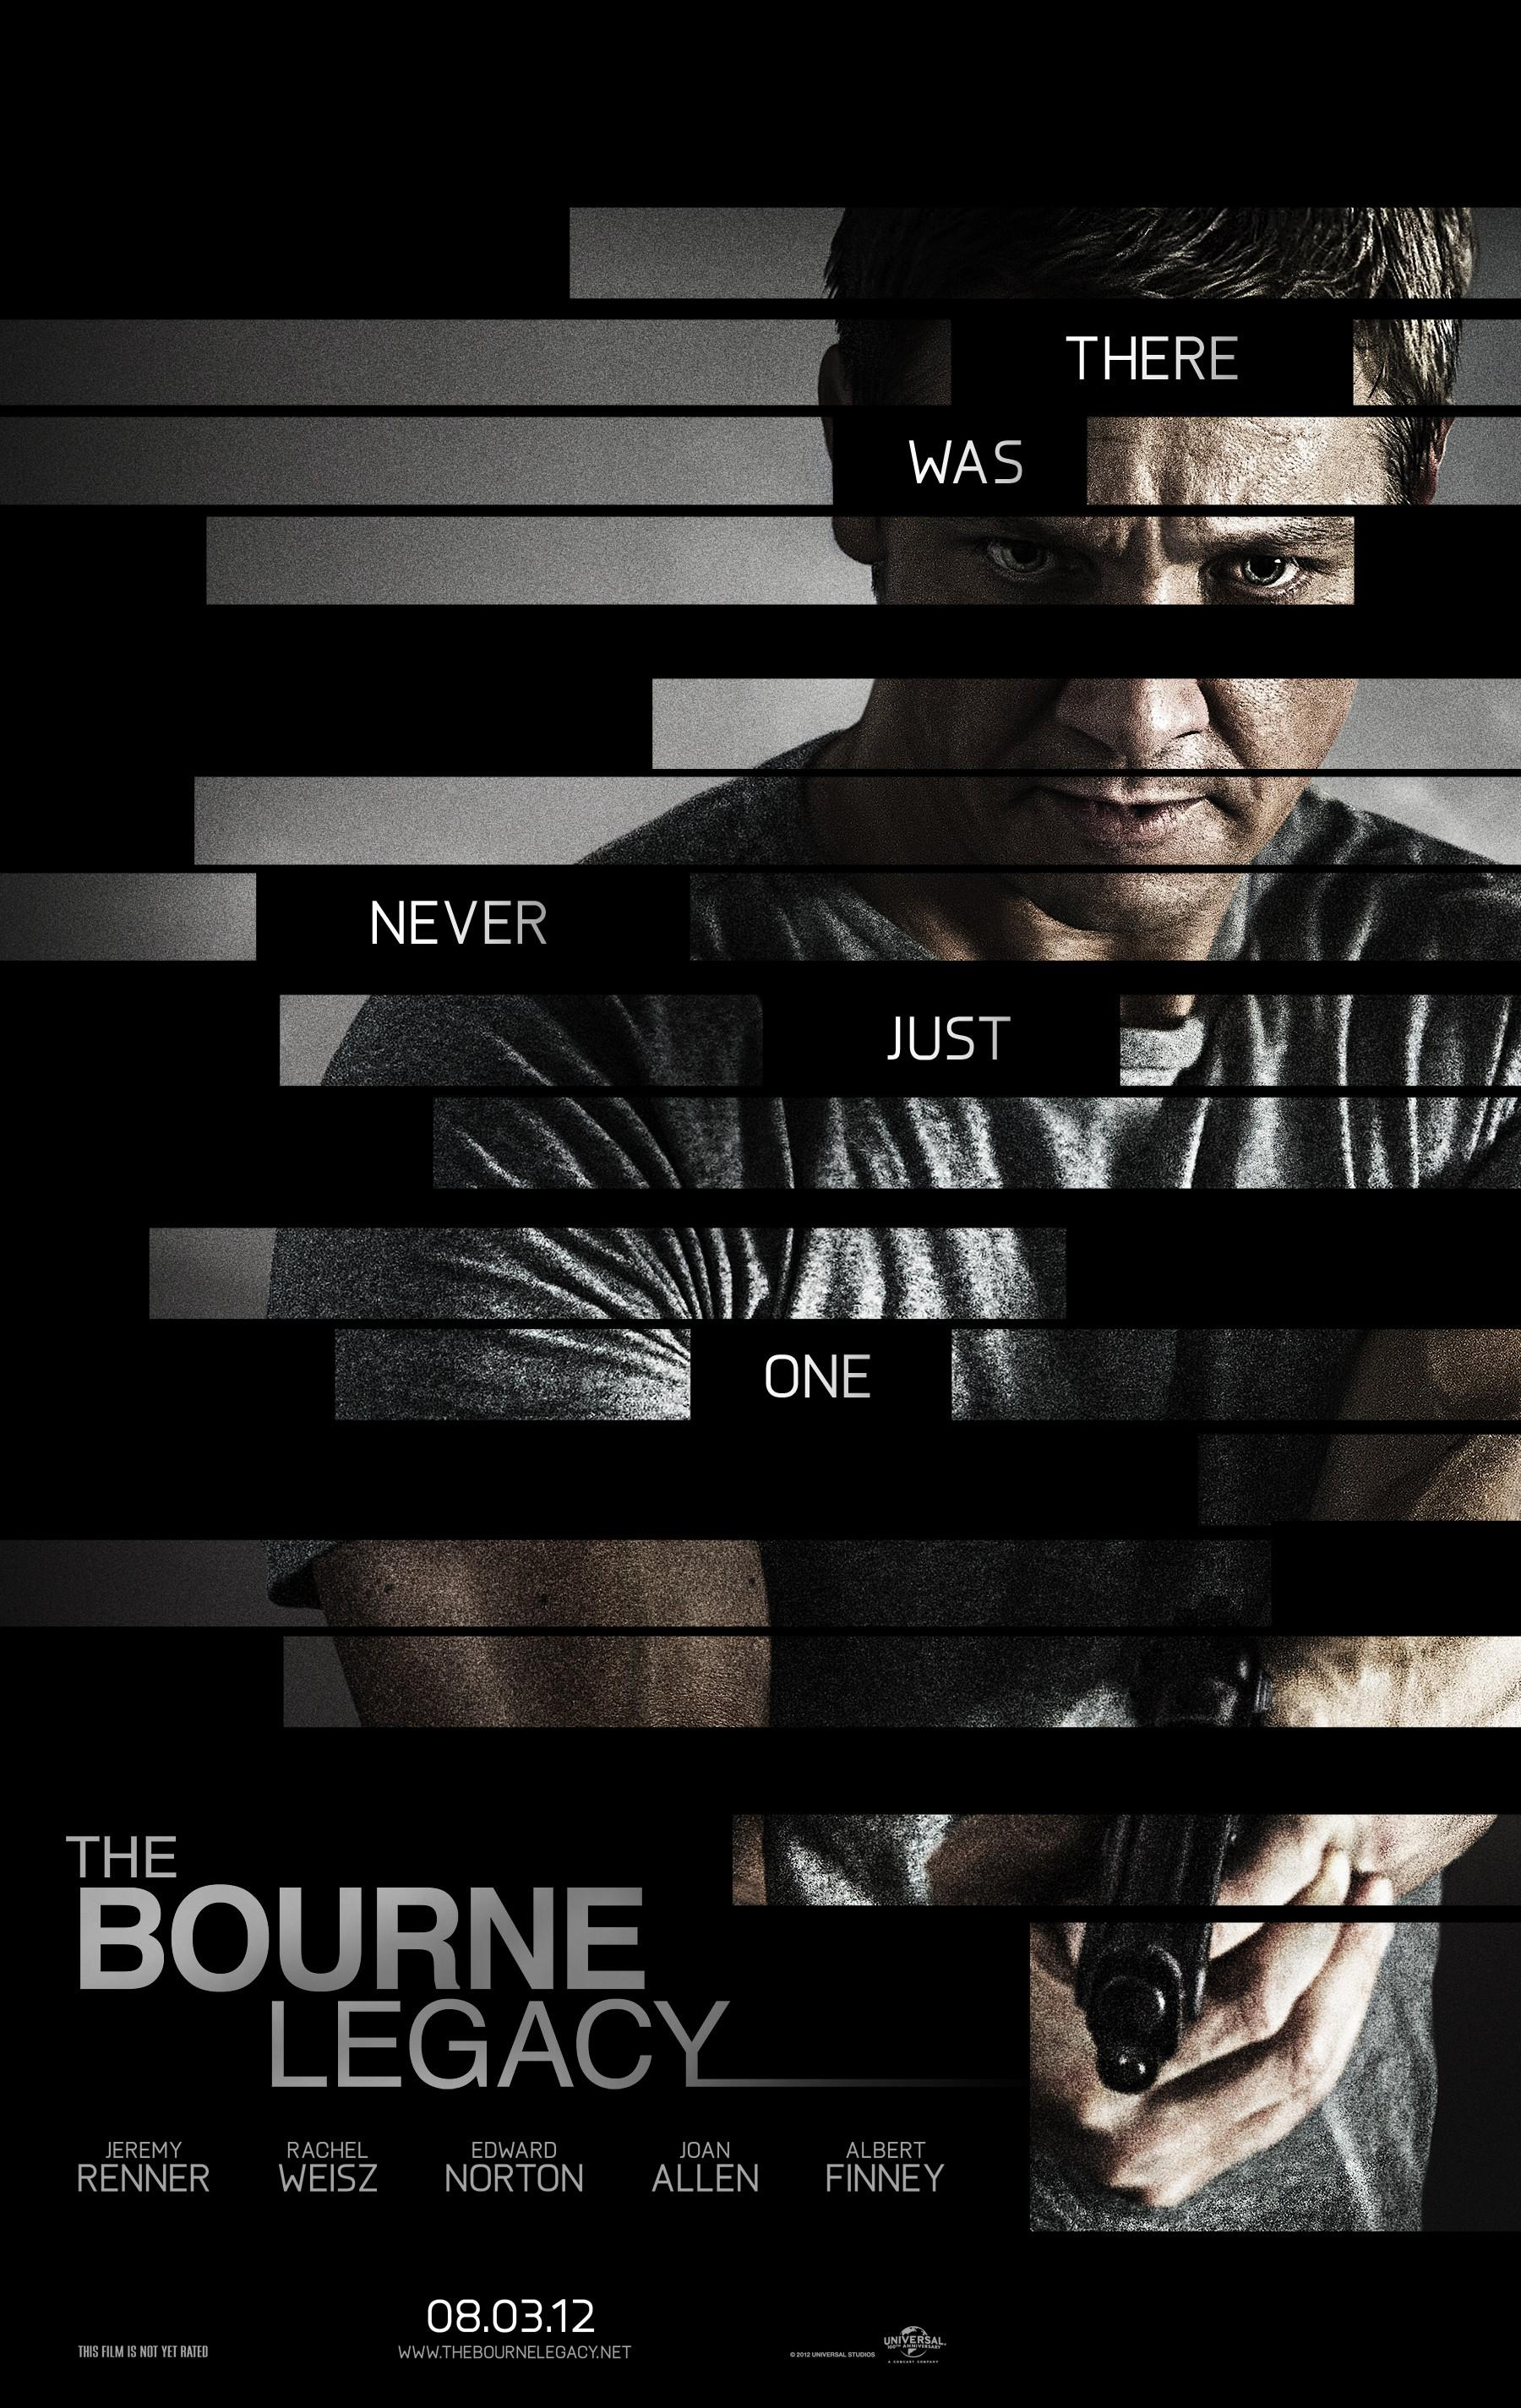 The Bourne Legacy: Mega Image Sized Movie Poster - Internet Movie Poster Gallery Prix